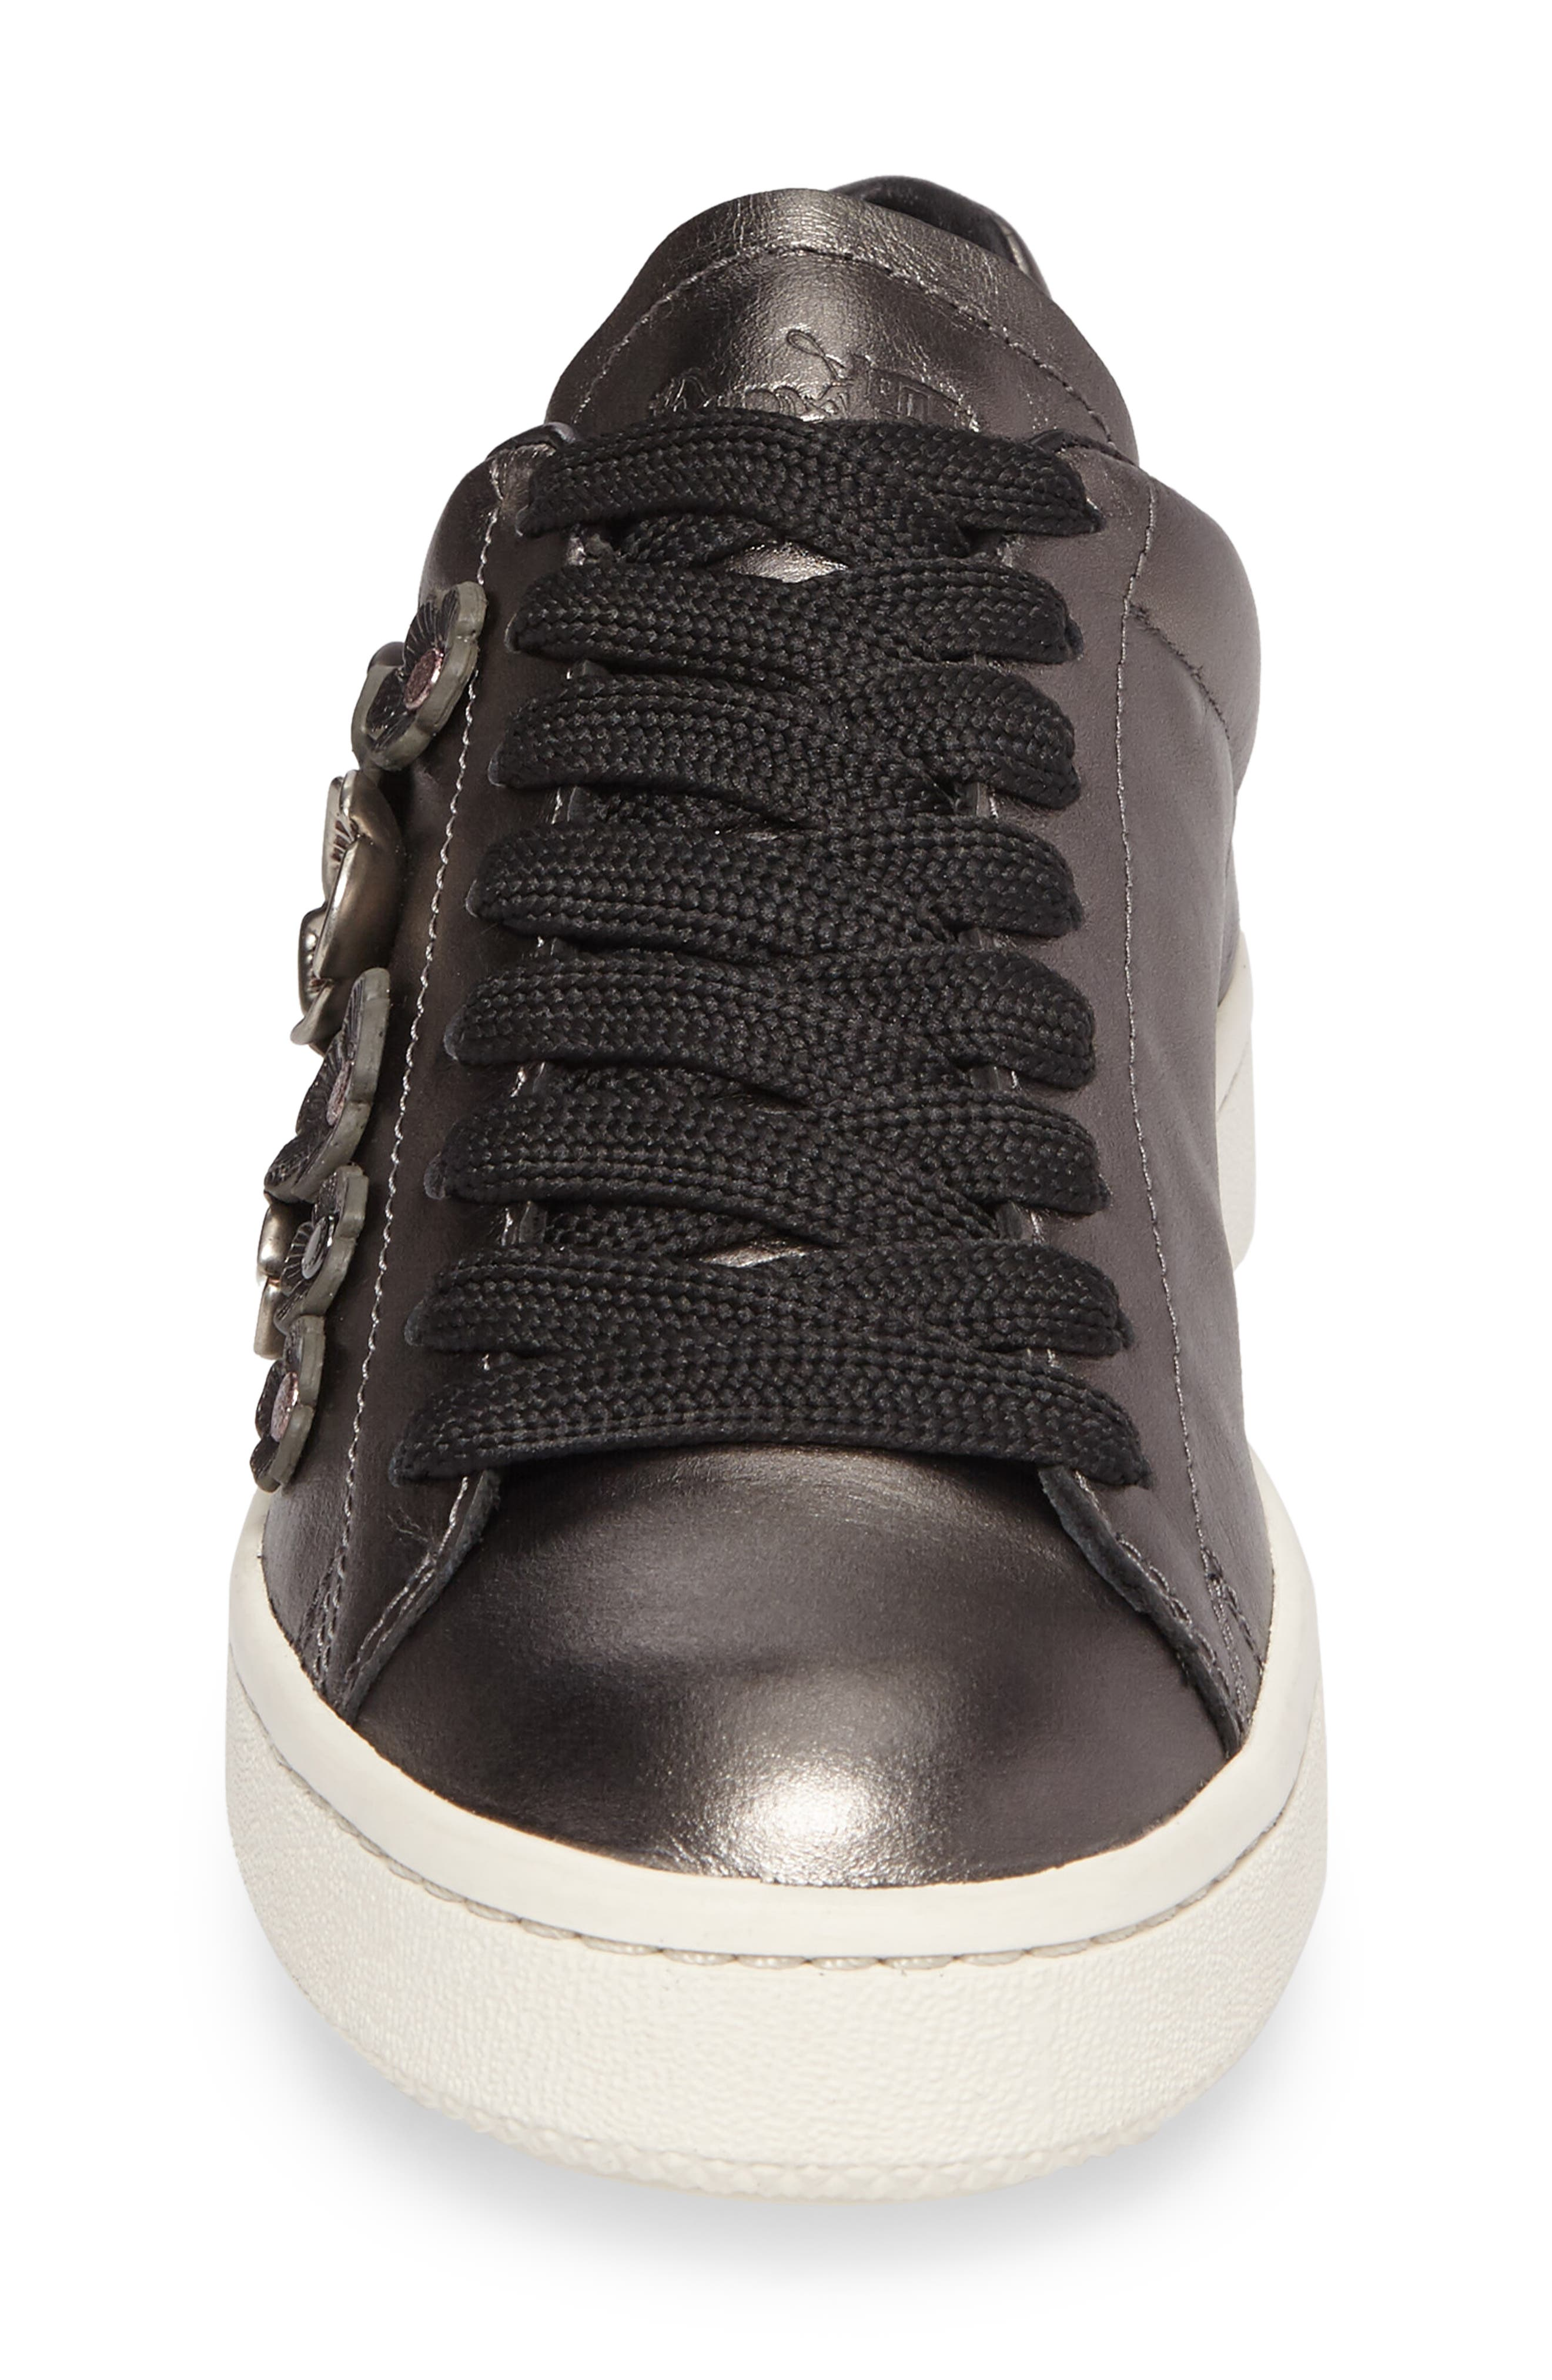 Tea Rose Metallic Sneaker,                             Alternate thumbnail 4, color,                             Gunmetal Leather